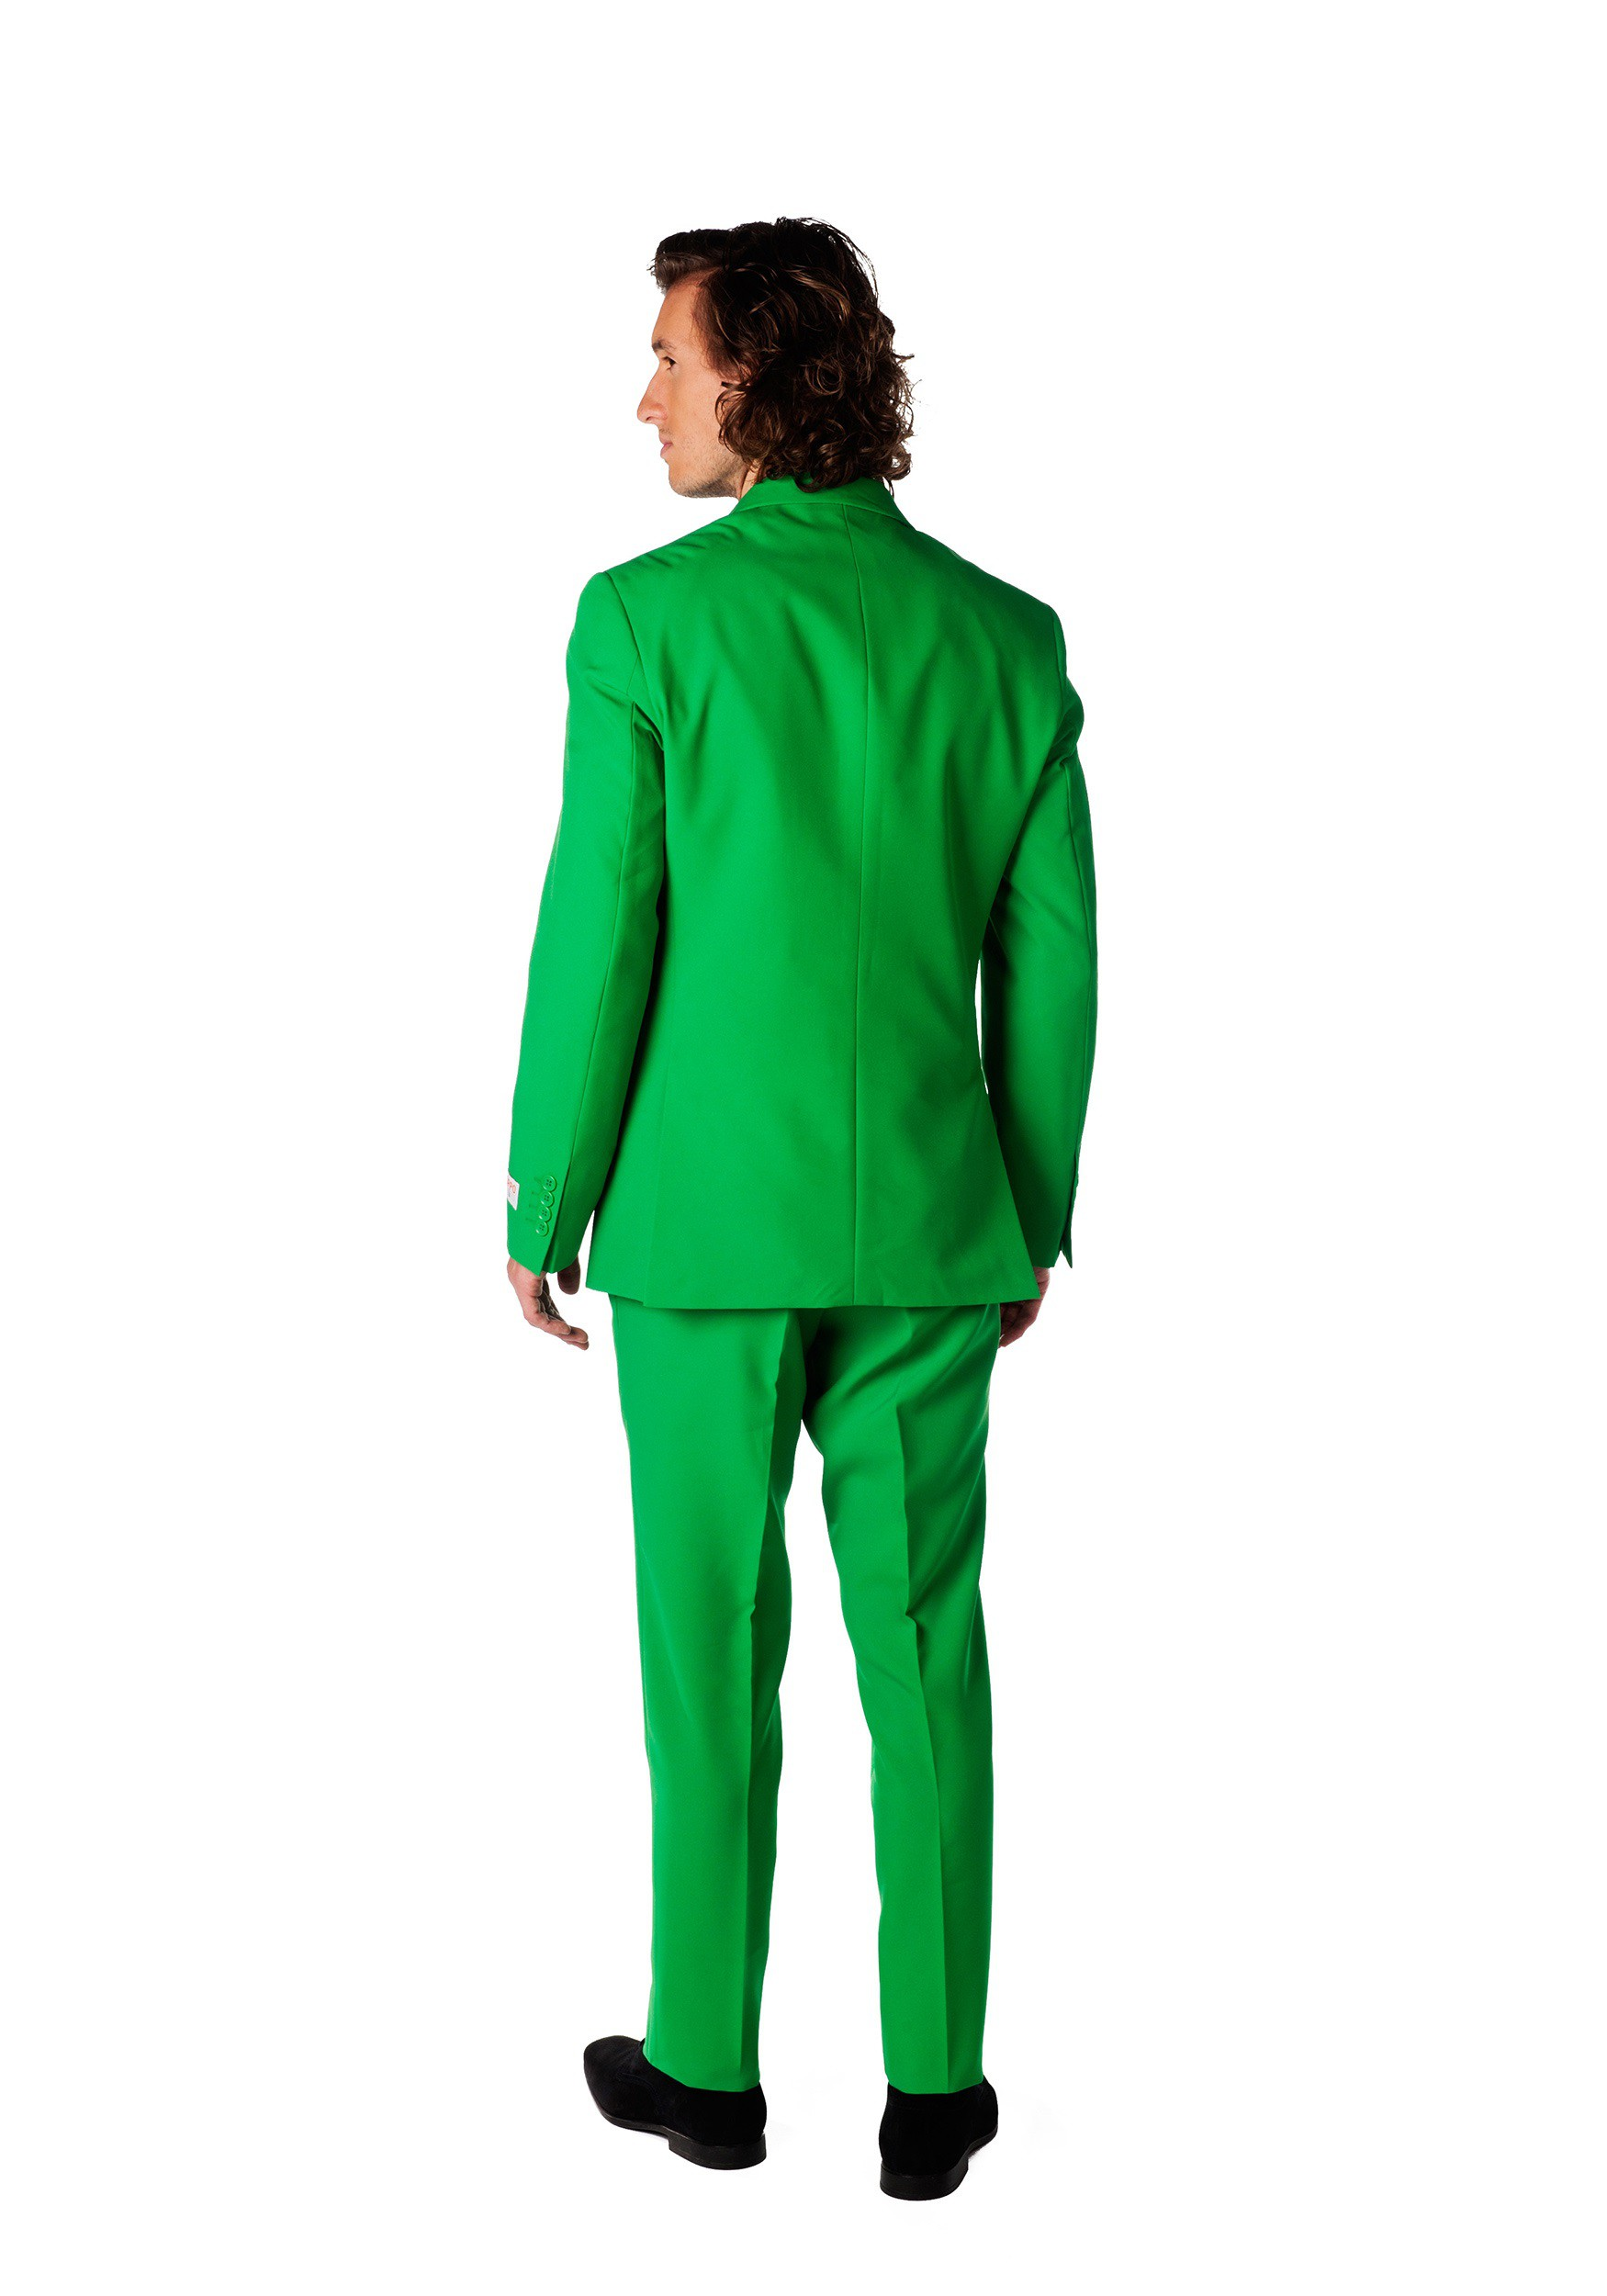 If you want to buy a green suit jacket and pants, you know exactly where to go now. Men who daydream about olive suit interview success can now breathe a sigh of relief. Our green suits for sale are of extraordinary quality. They're also kind on the budget.